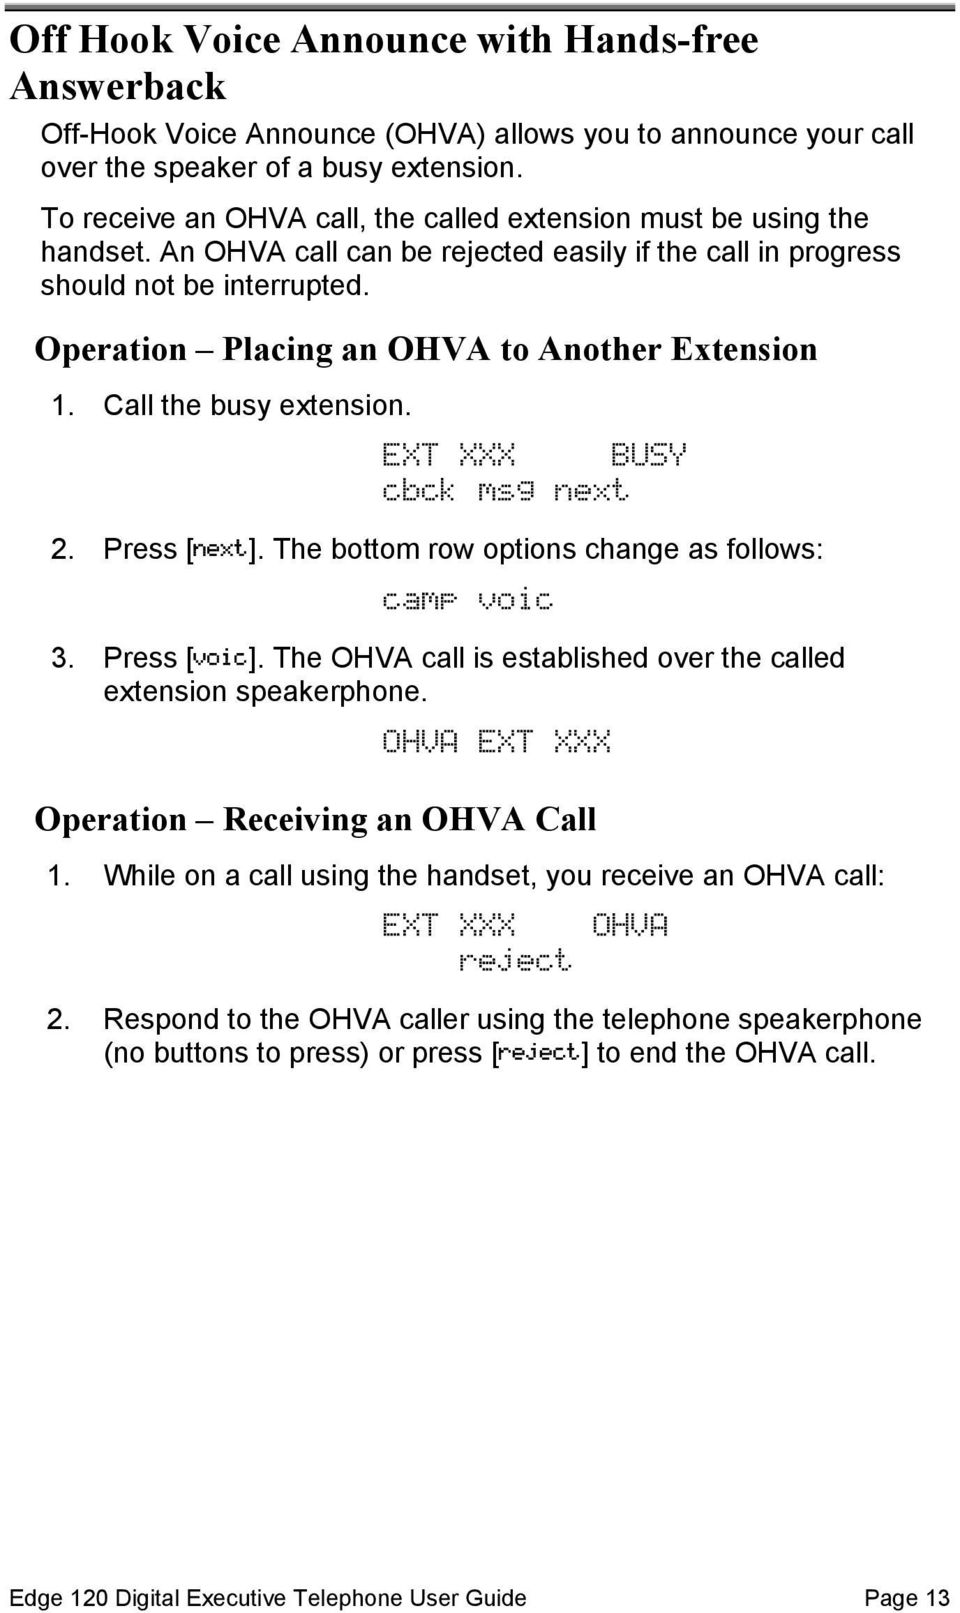 Operation Placing an OHVA to Another Extension 1. Call the busy extension. EXT XXX BUSY cbck msg next 2. Press [next]. The bottom row options change as follows: camp voic 3. Press [voic].